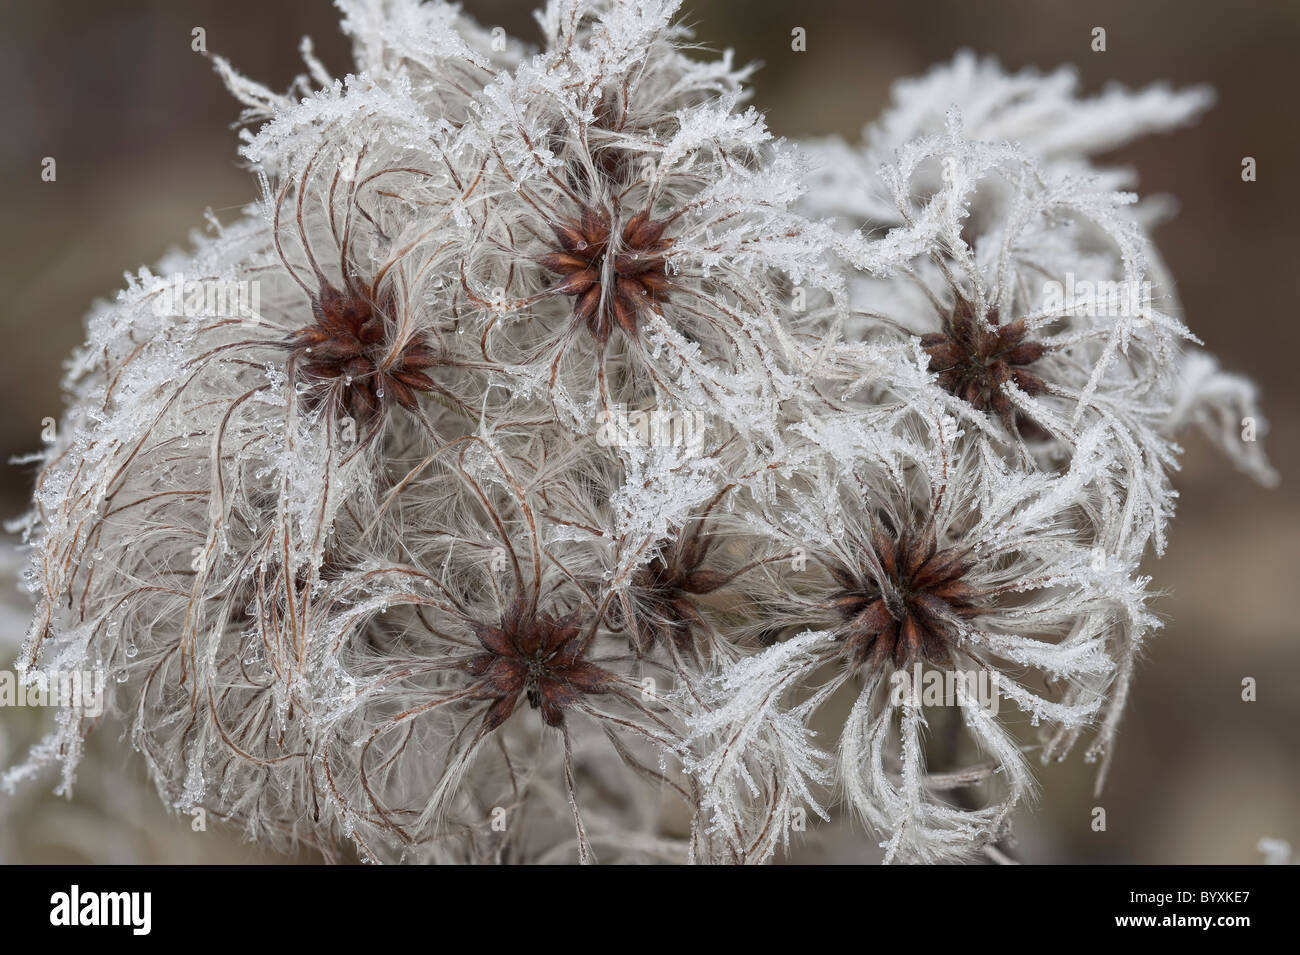 Old Man's Beard Clematis vitalba with frost - Stock Image